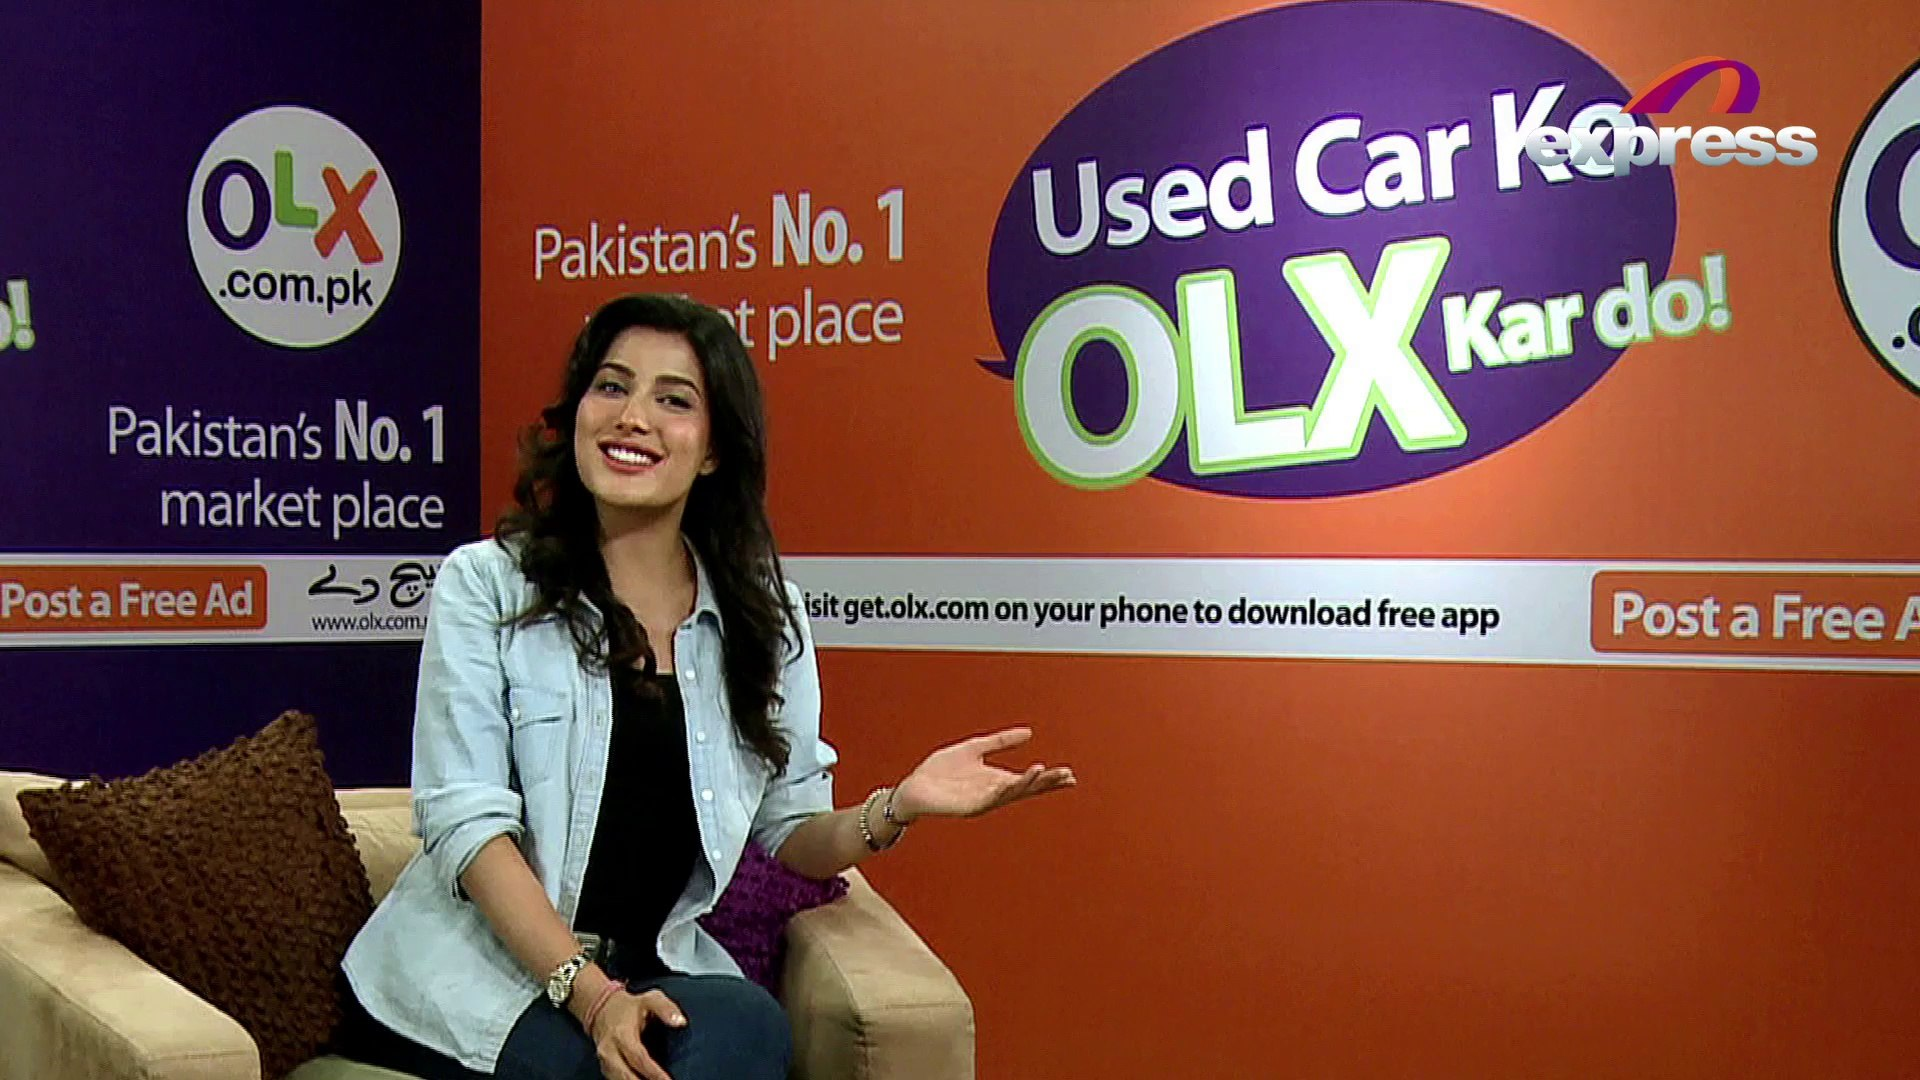 Sell your used car on OLX - Mehwish Hayat promoting OLX